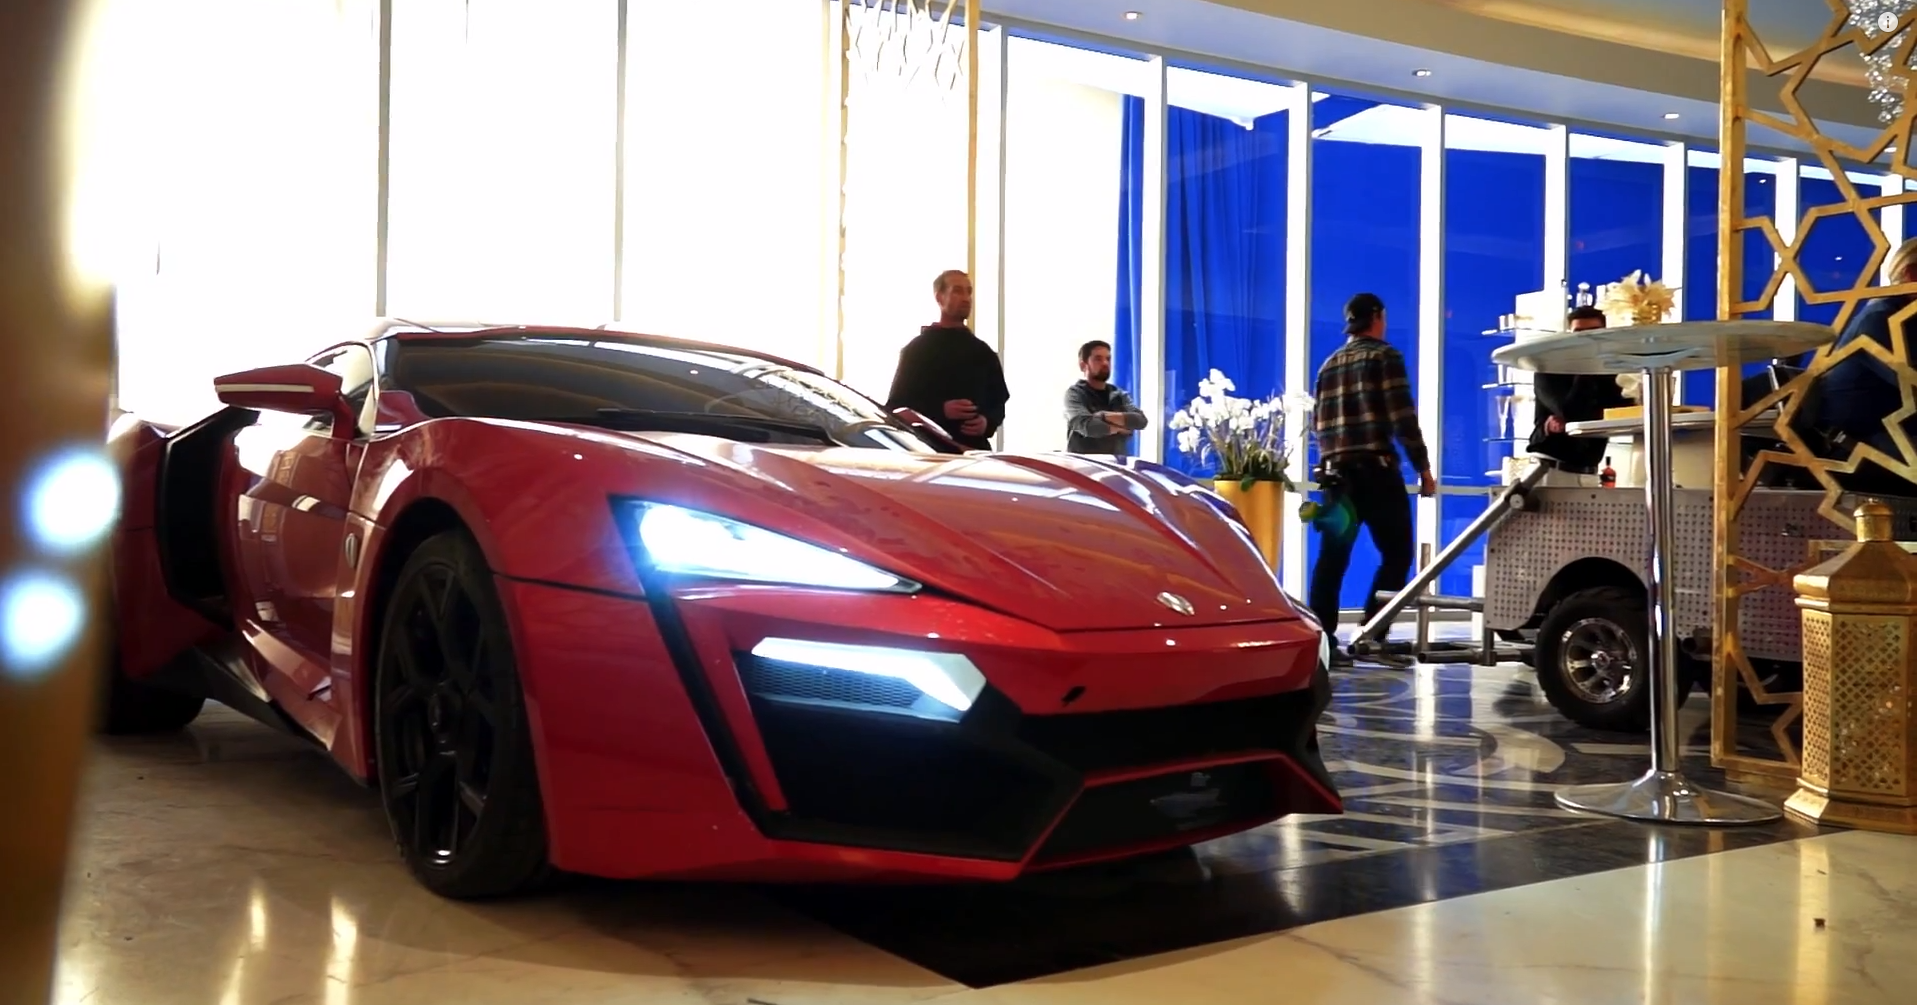 Fast And Furious 7 W Motors >> The Cast and Crew of Furious 7 Enjoyed Working with the Lycan Hypersport - autoevolution